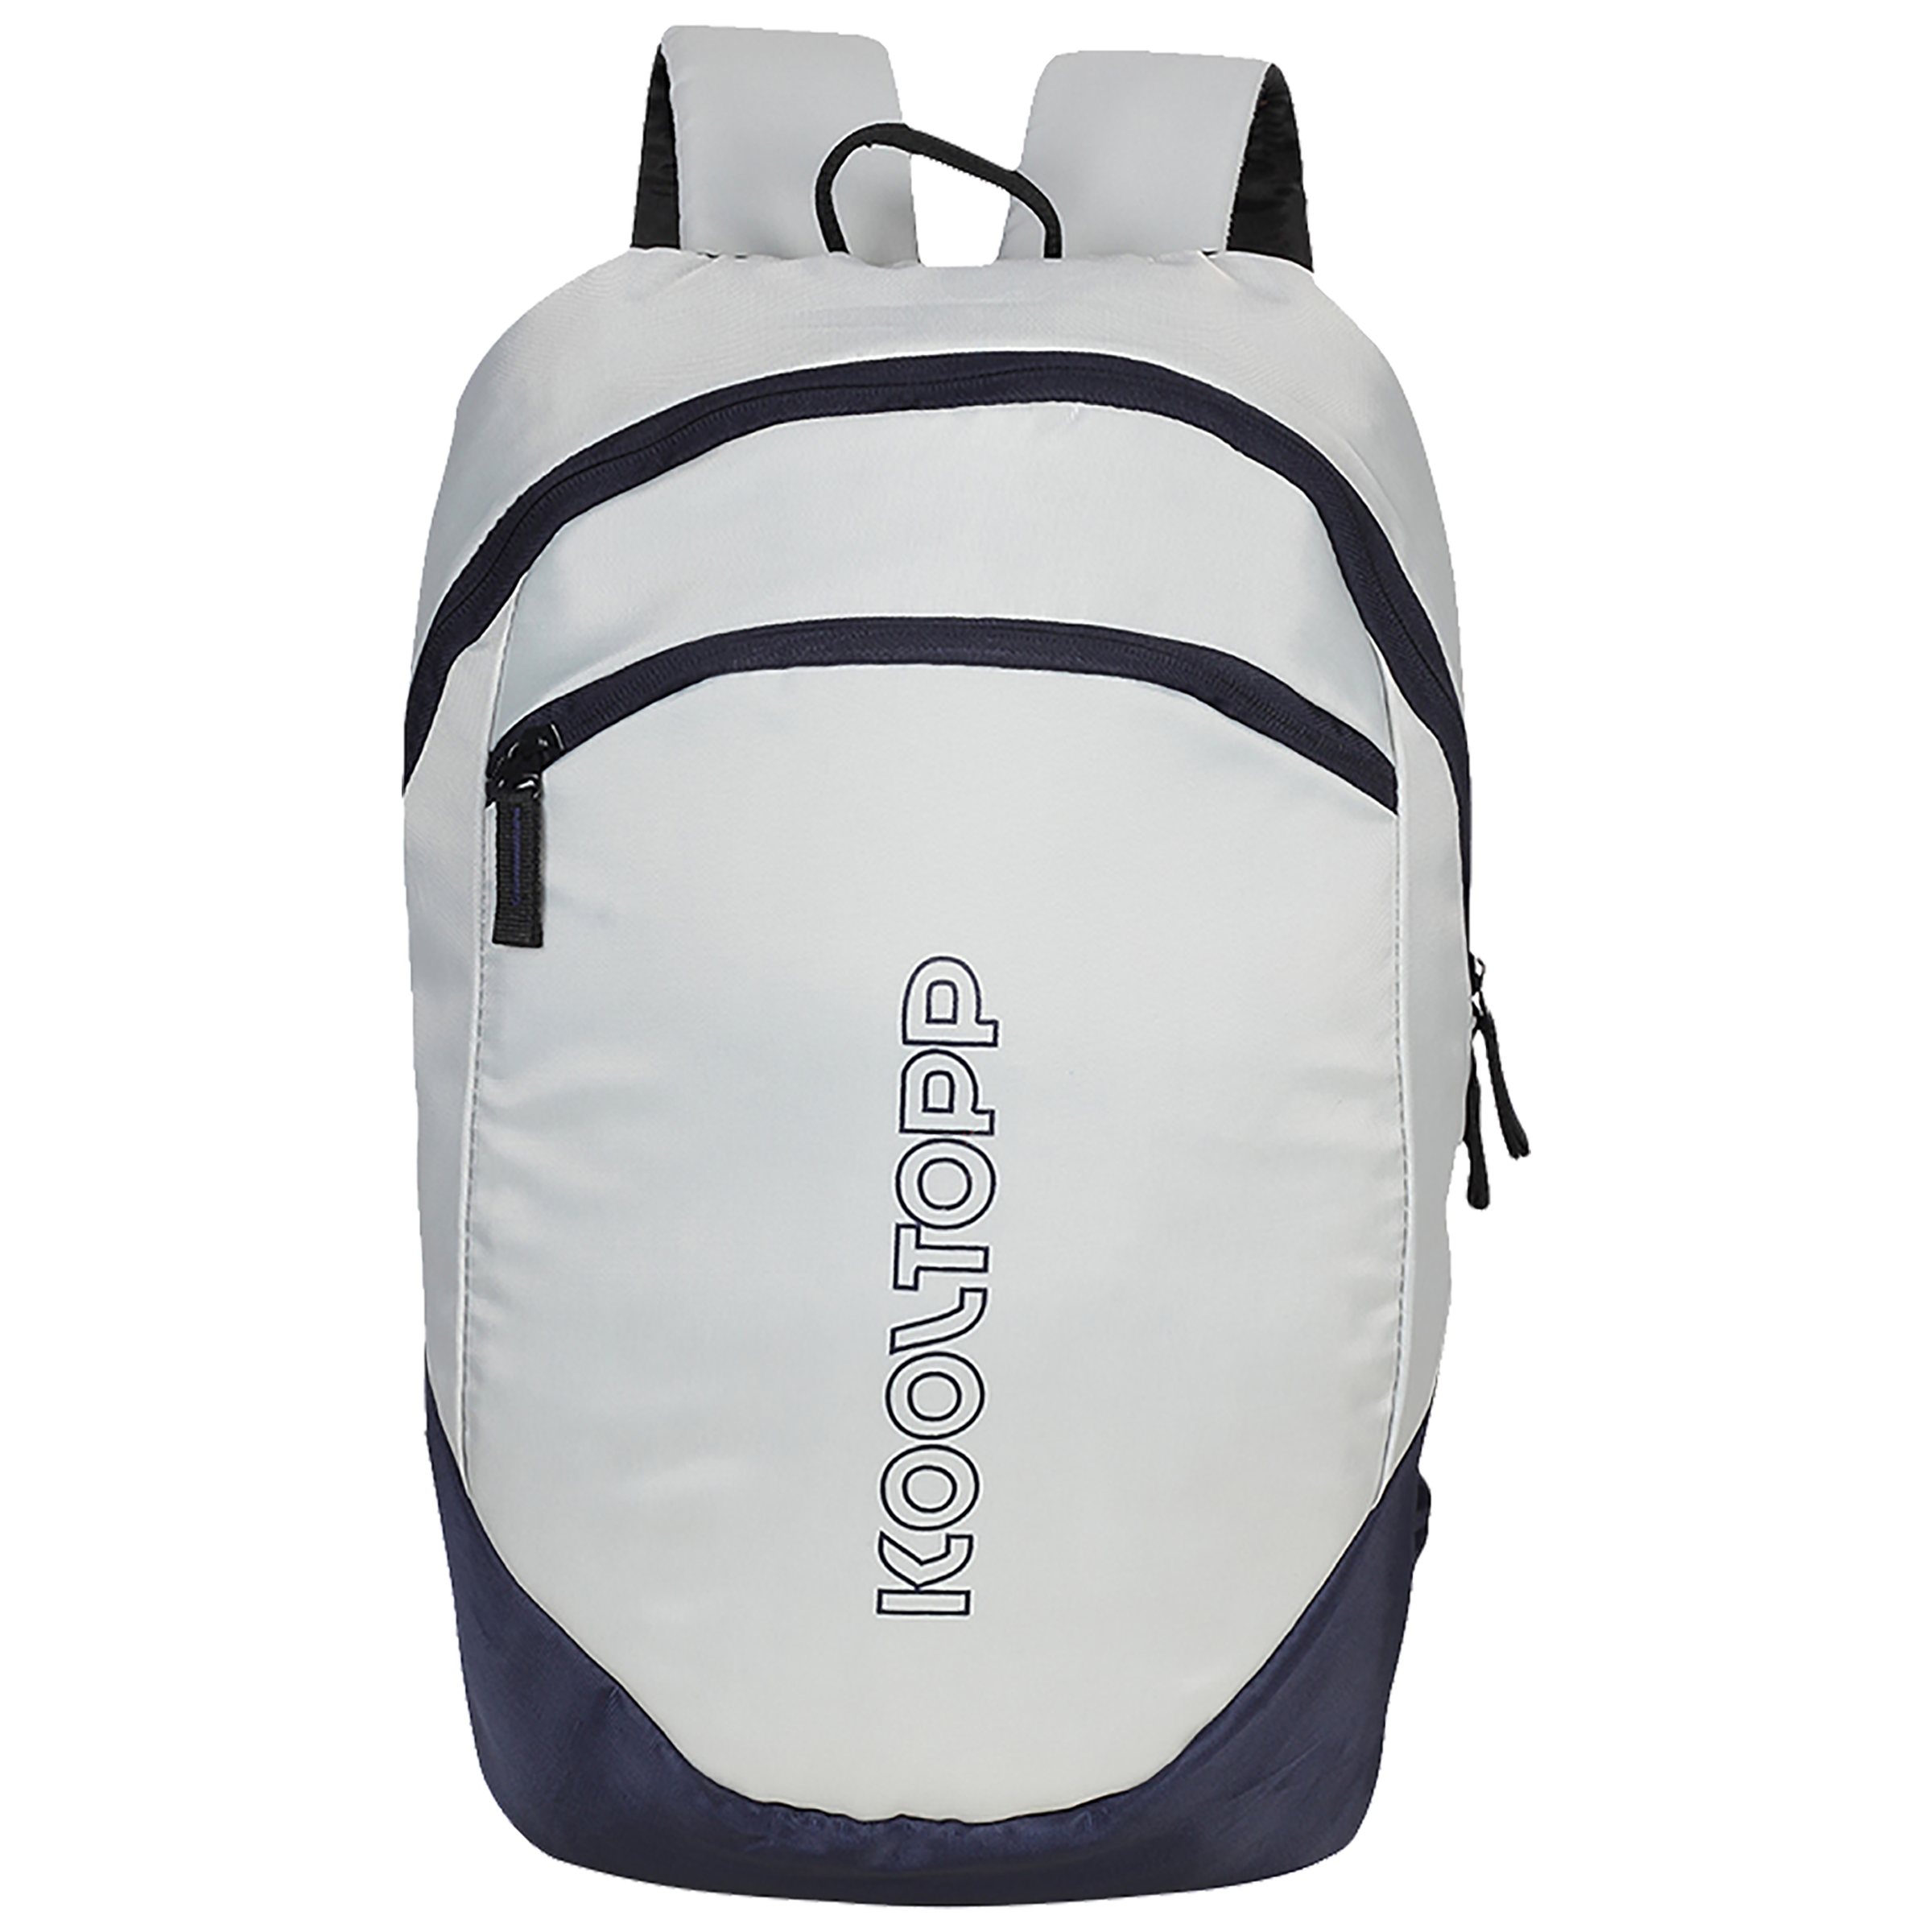 Kooltopp Simple 14 Litres Polyester Backpack for 13 Inch Laptop (Water Resistant, KT436-16, Navy Blue)_1